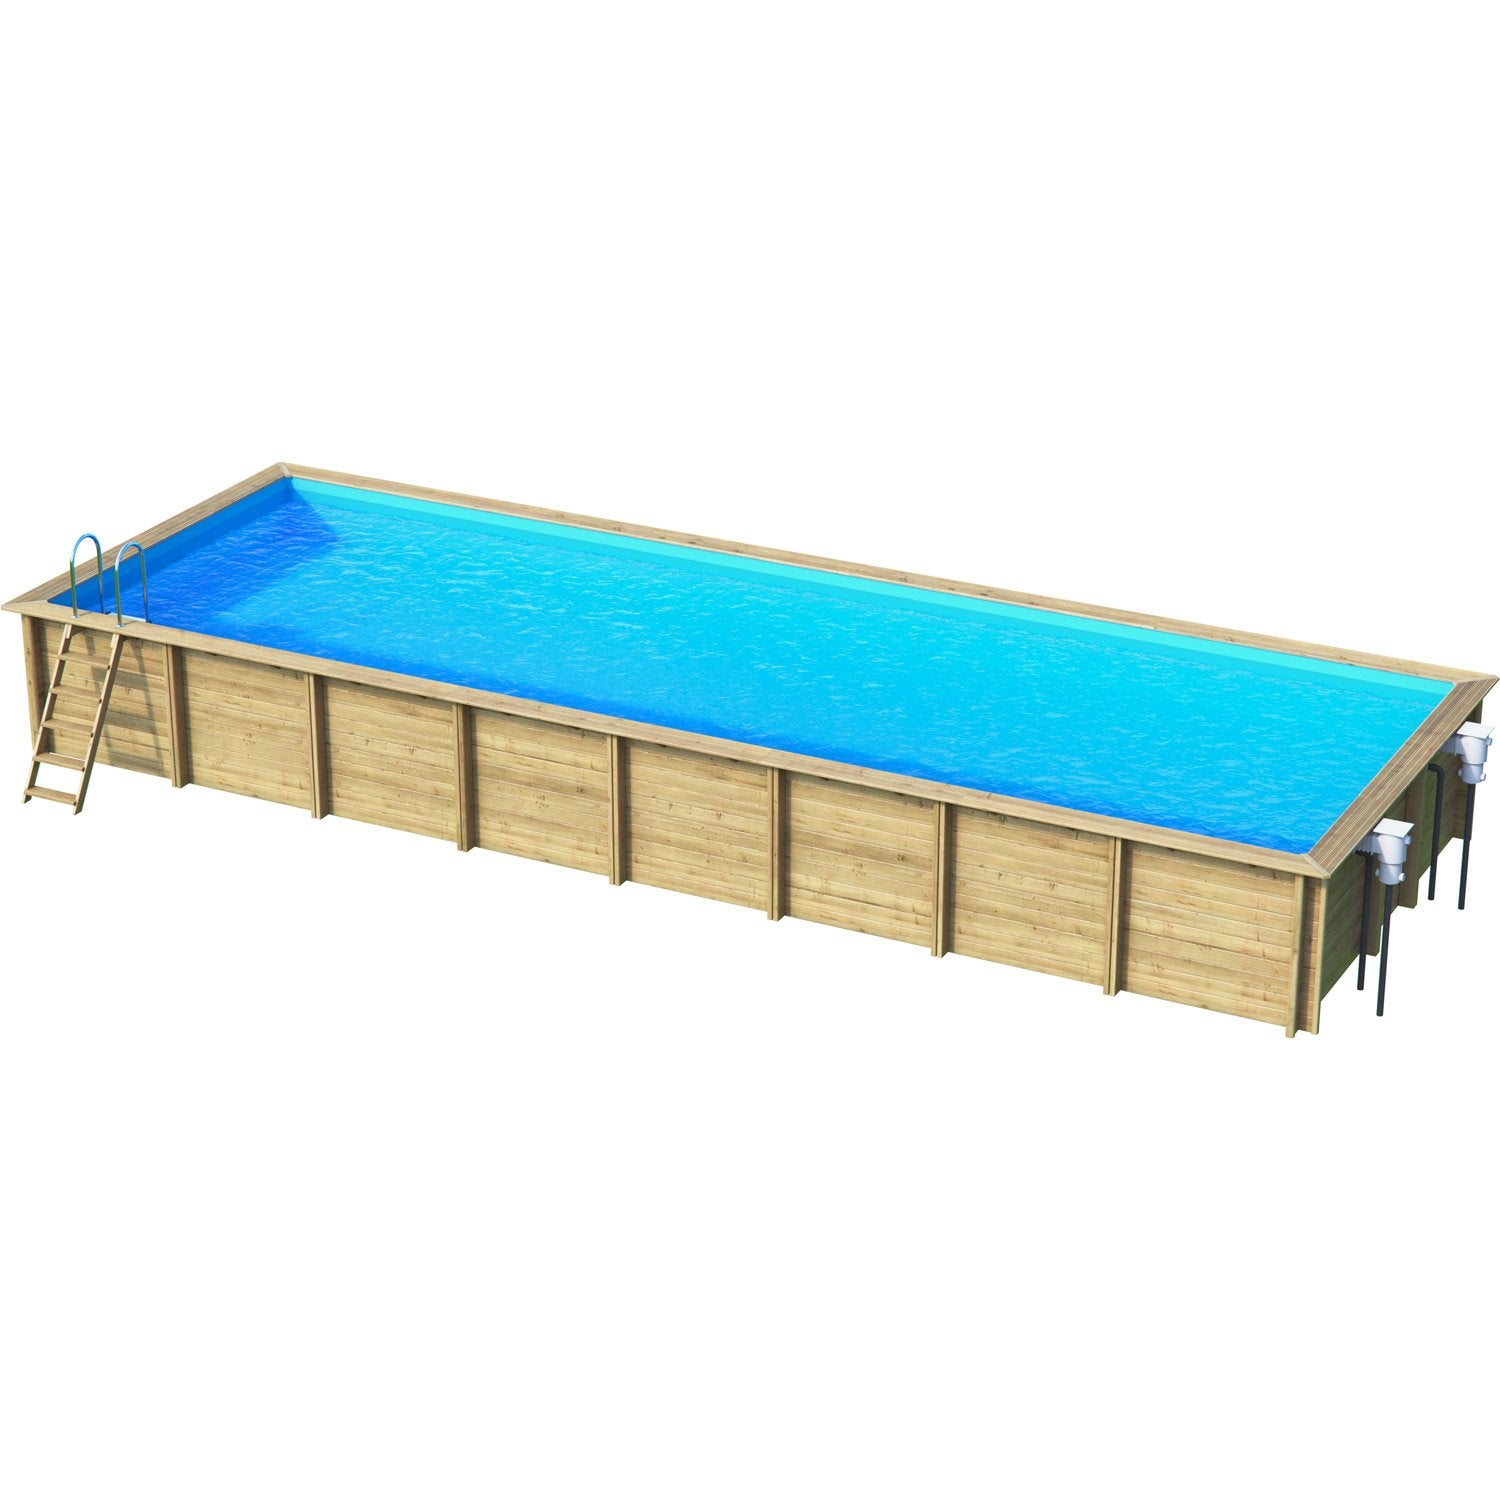 Procopi piscine for Piscine hors sol durable